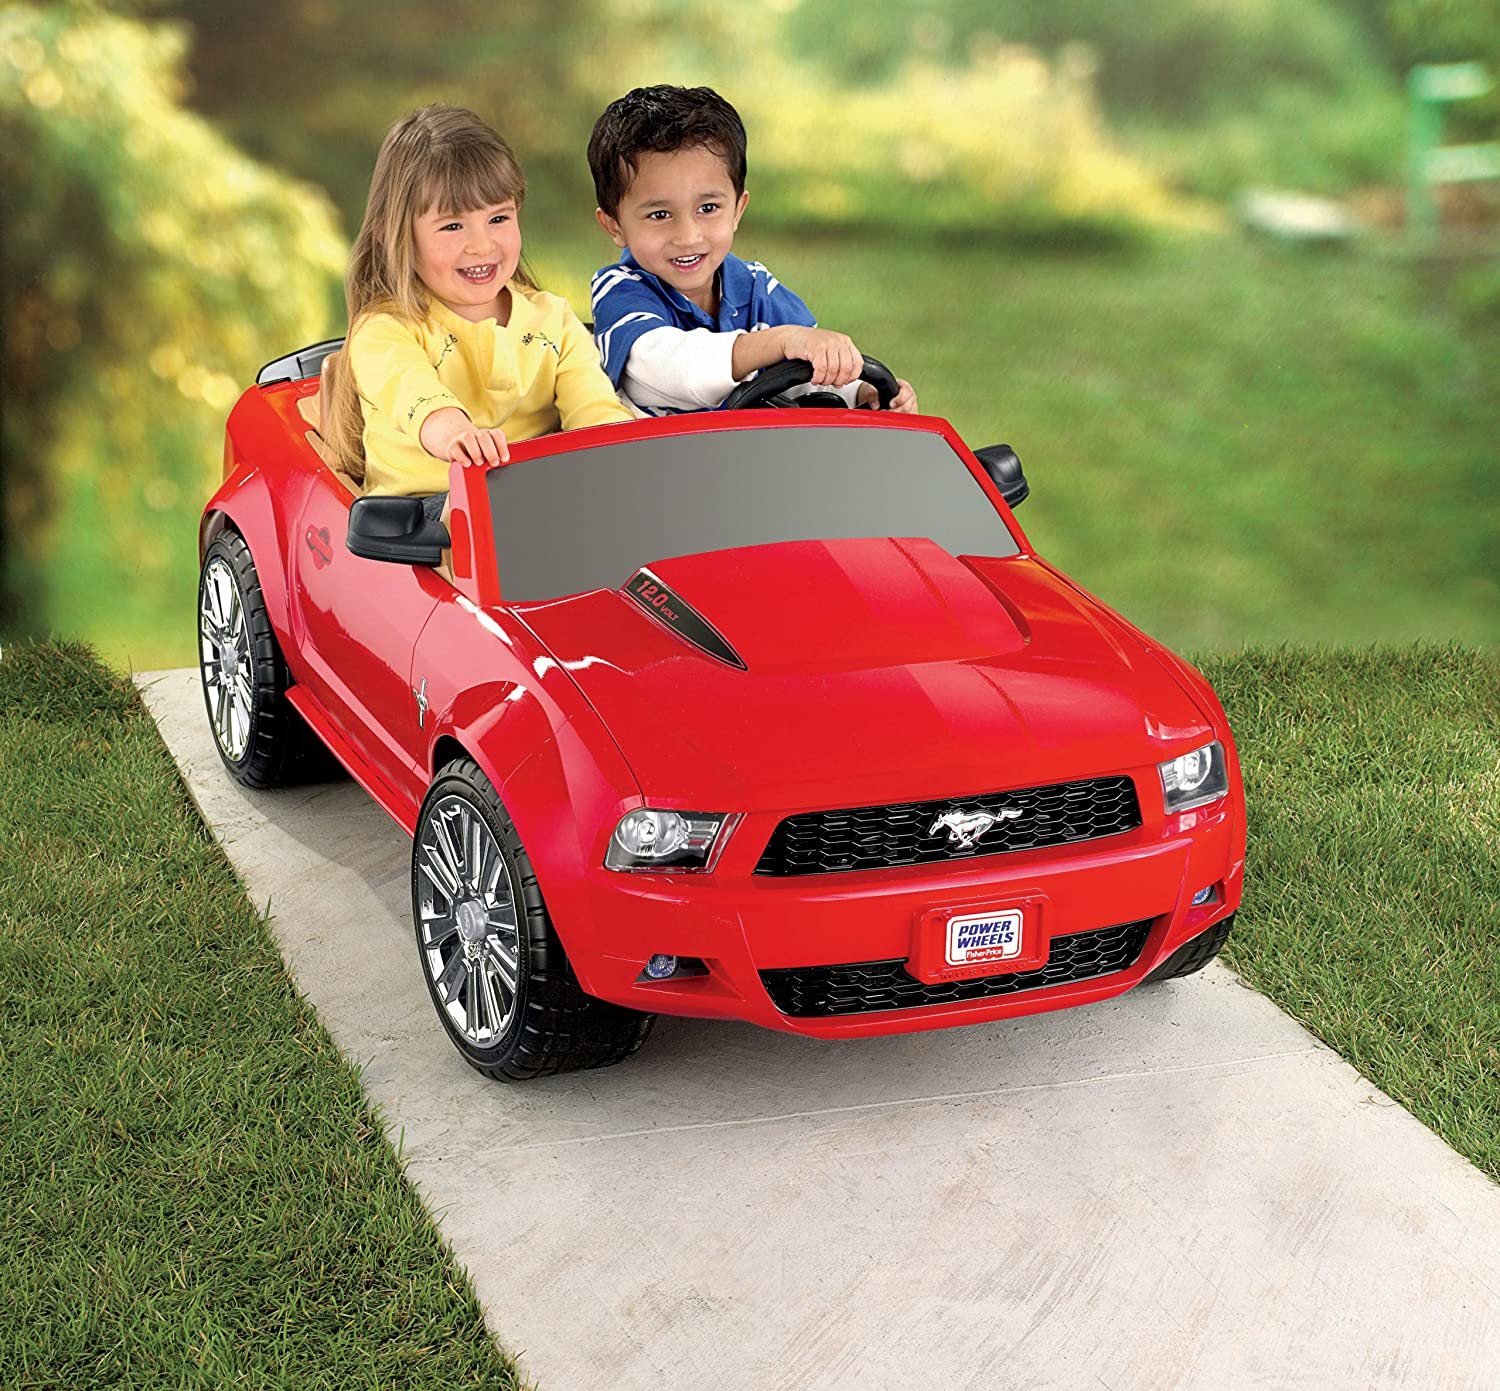 Ford Toys For Boys : Fisher price ford mustang power wheels kids motor toy car